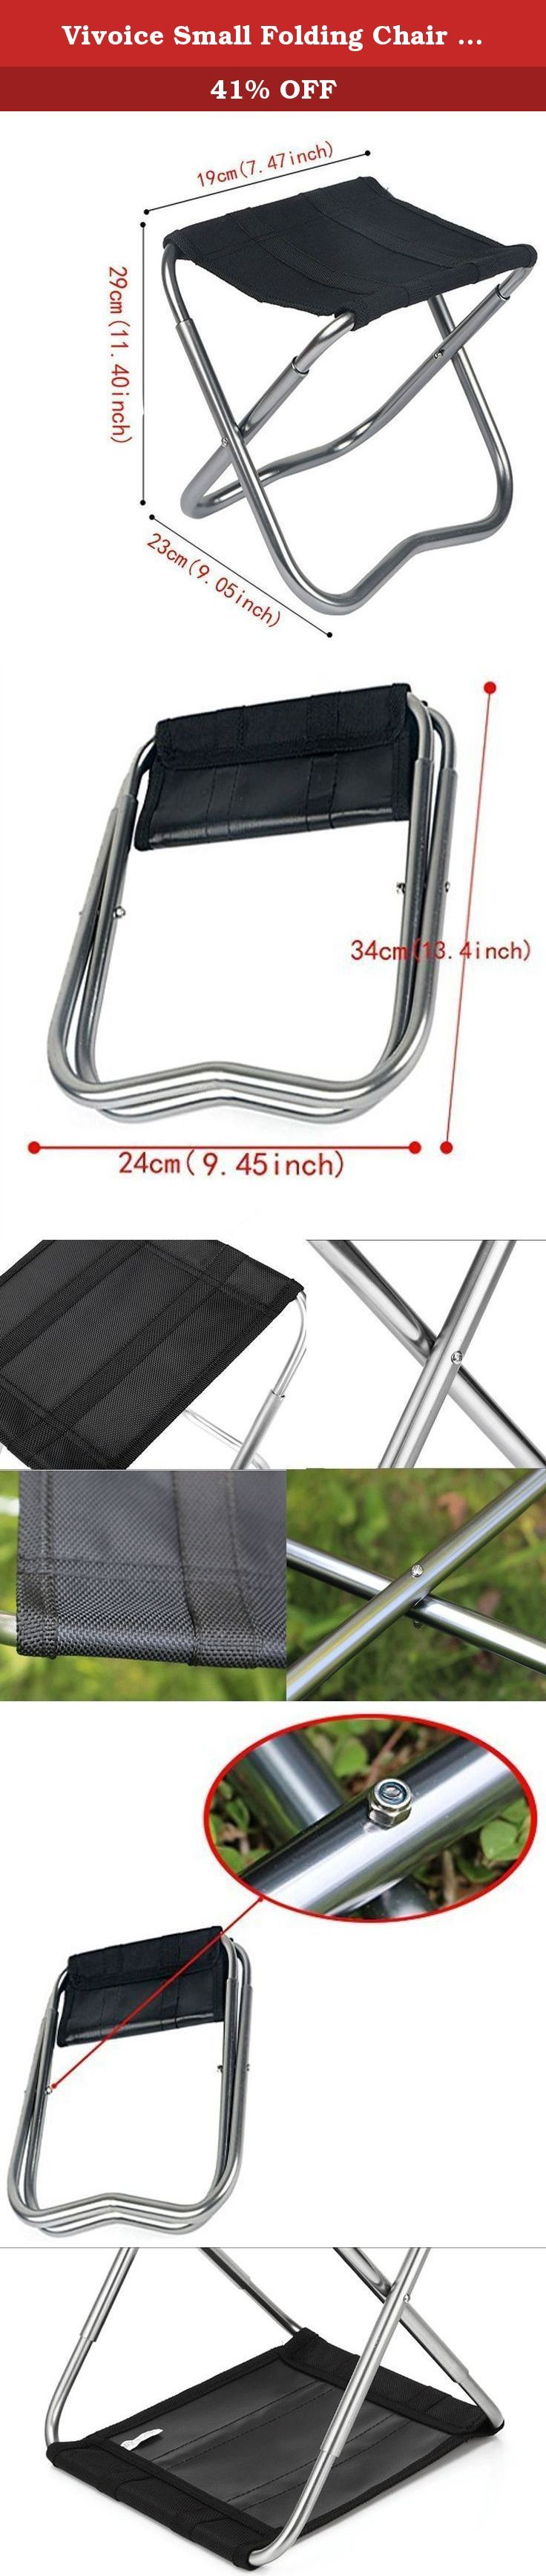 28 best Small Folding Camping Stools images on Pinterest